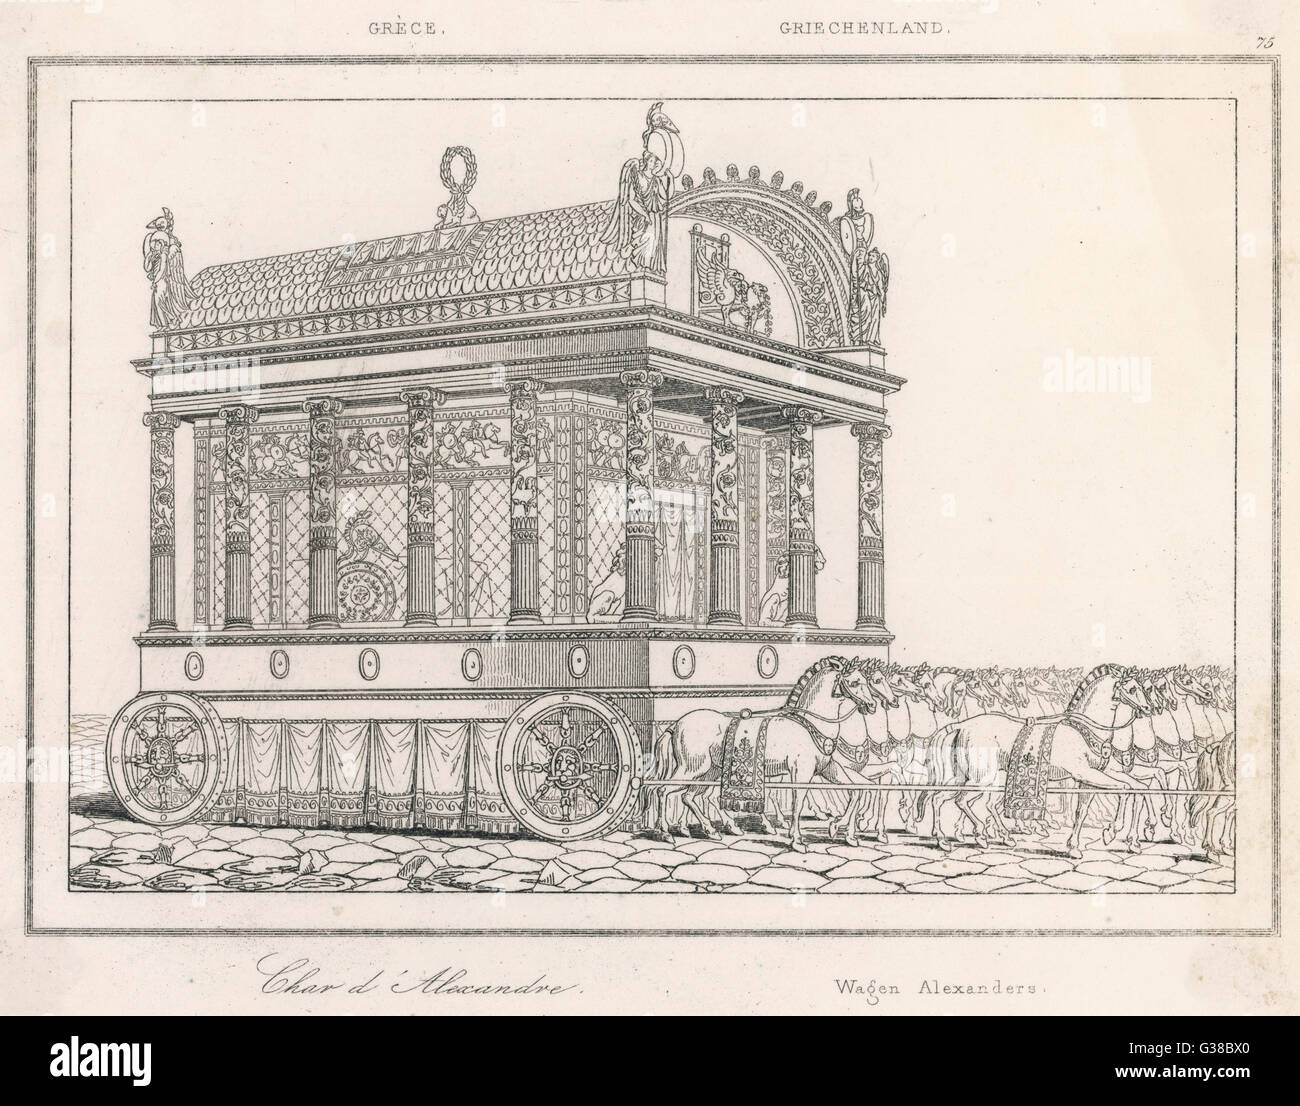 The highly ornamental but  surely somewhat impractical  carriage of Alexander the  Great      Date: 1817 - Stock Image